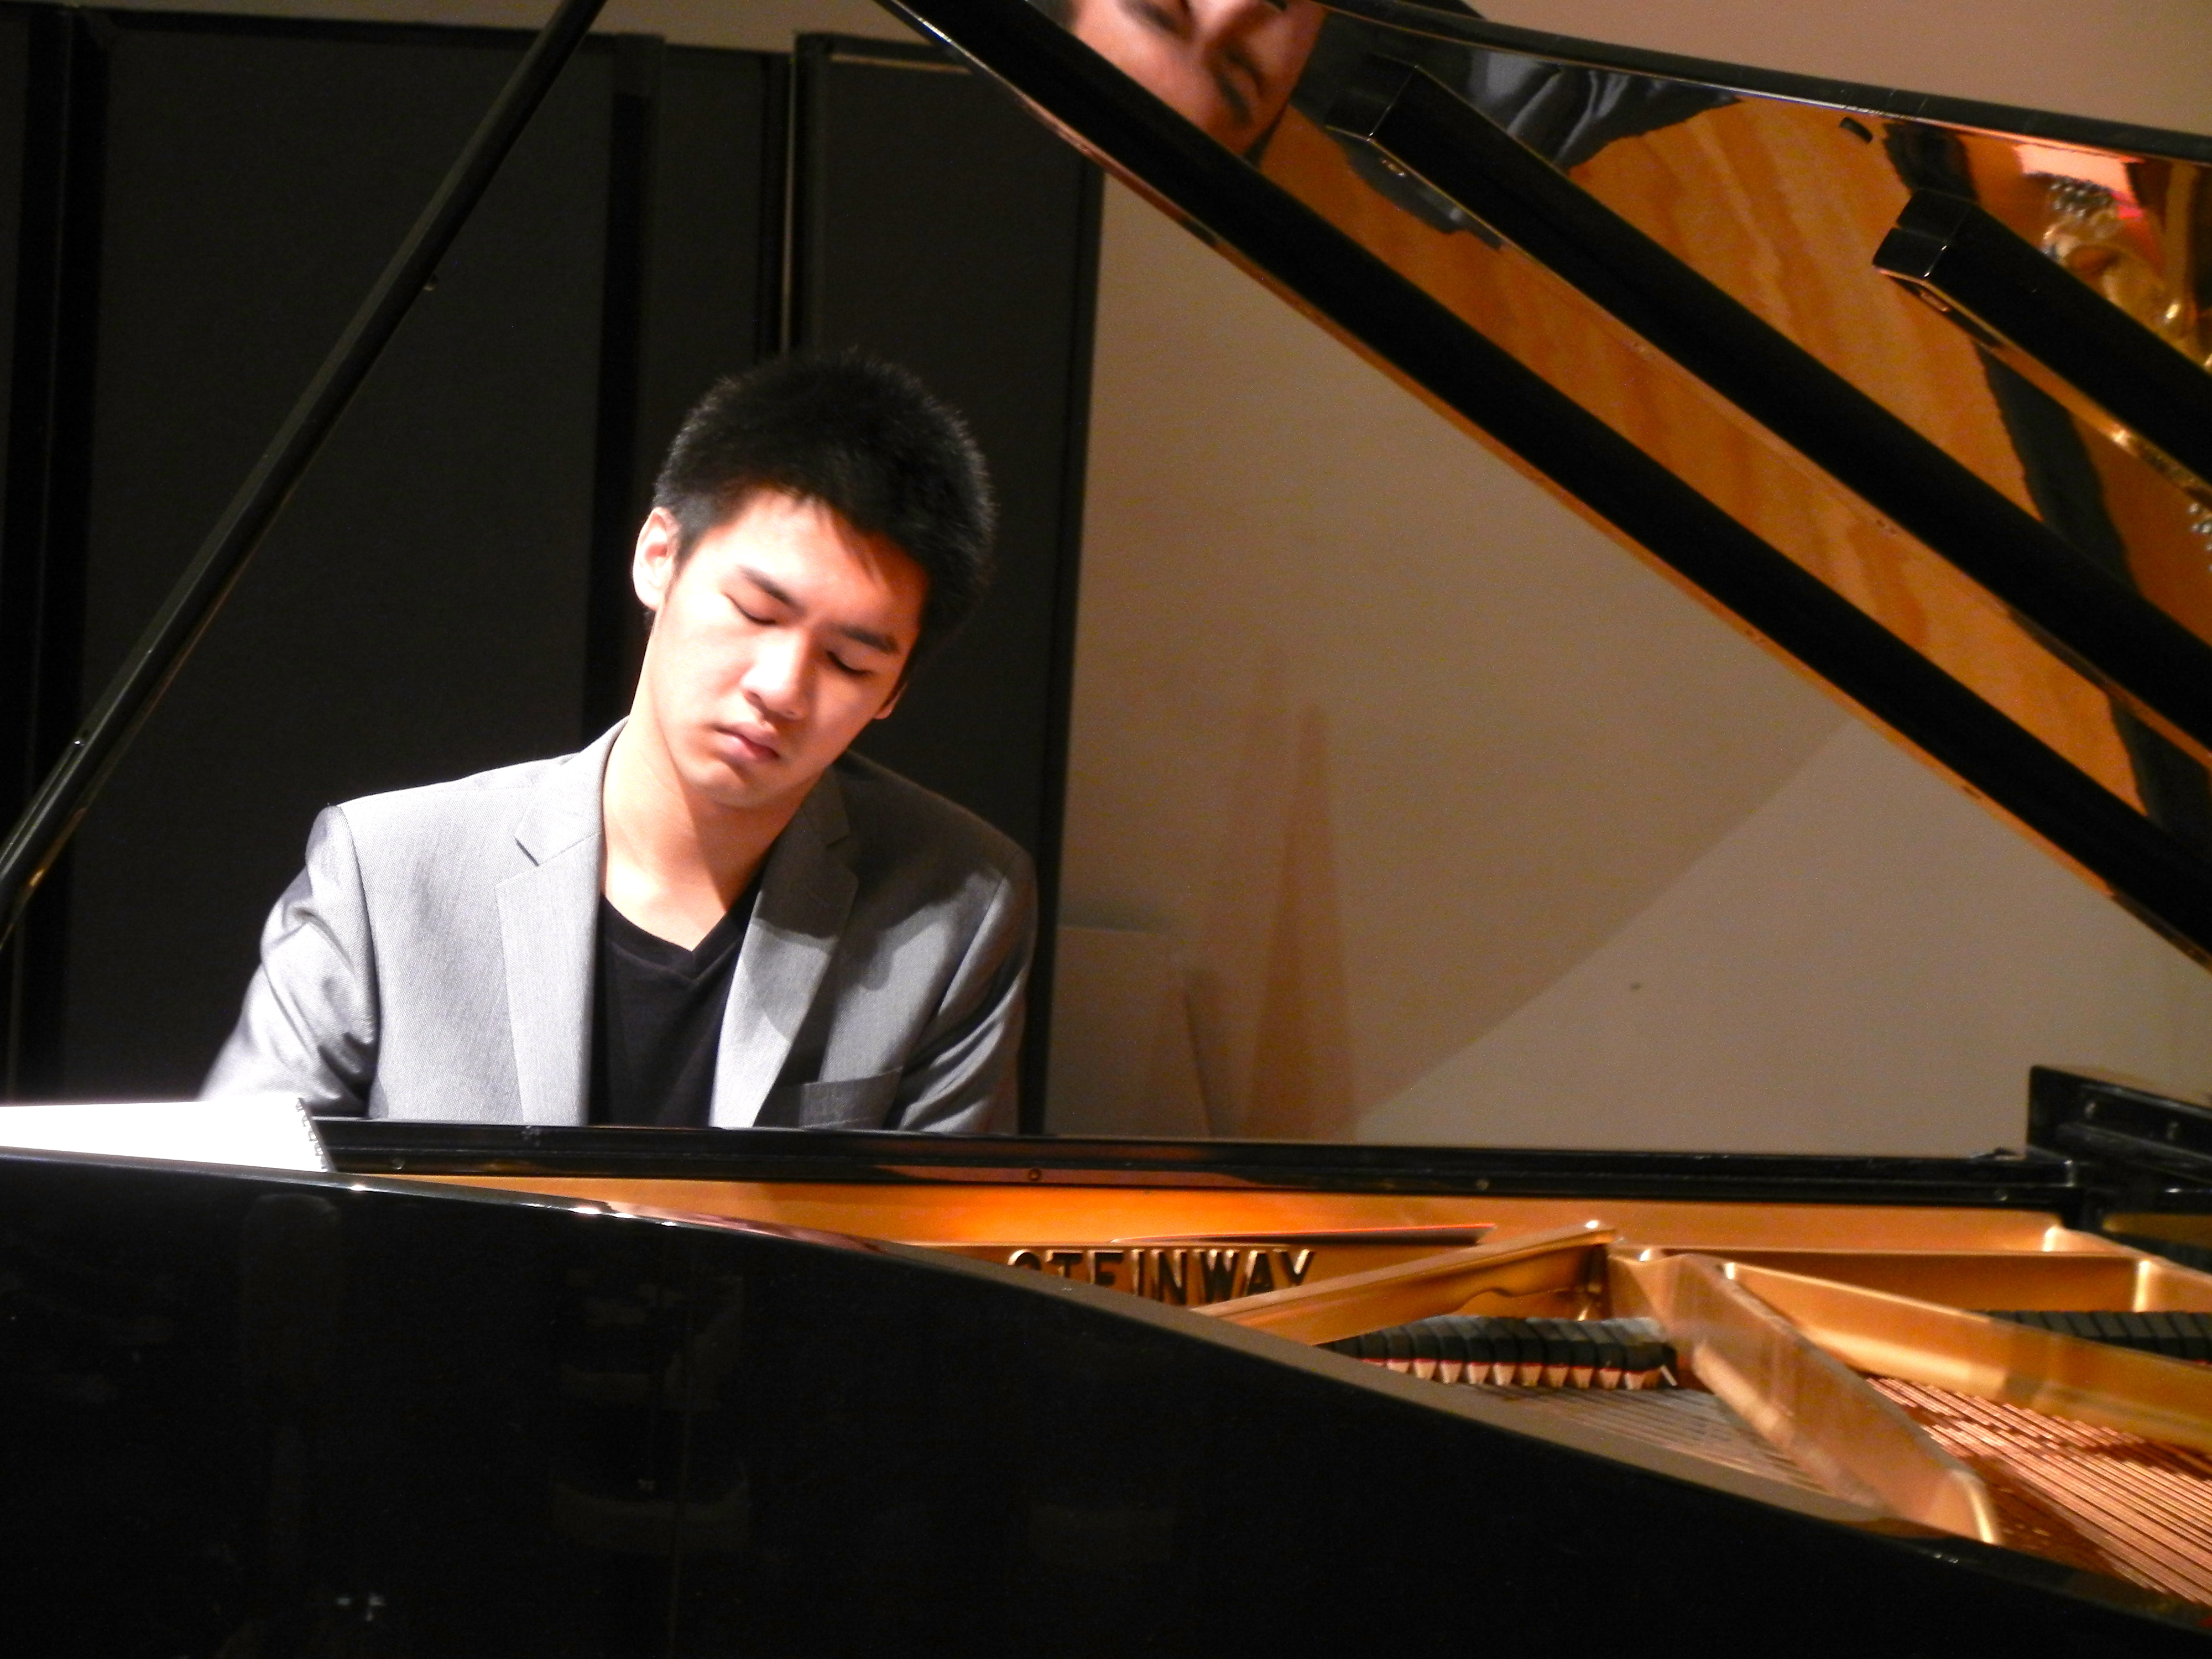 Pianist Tao on quest to revive concert experience